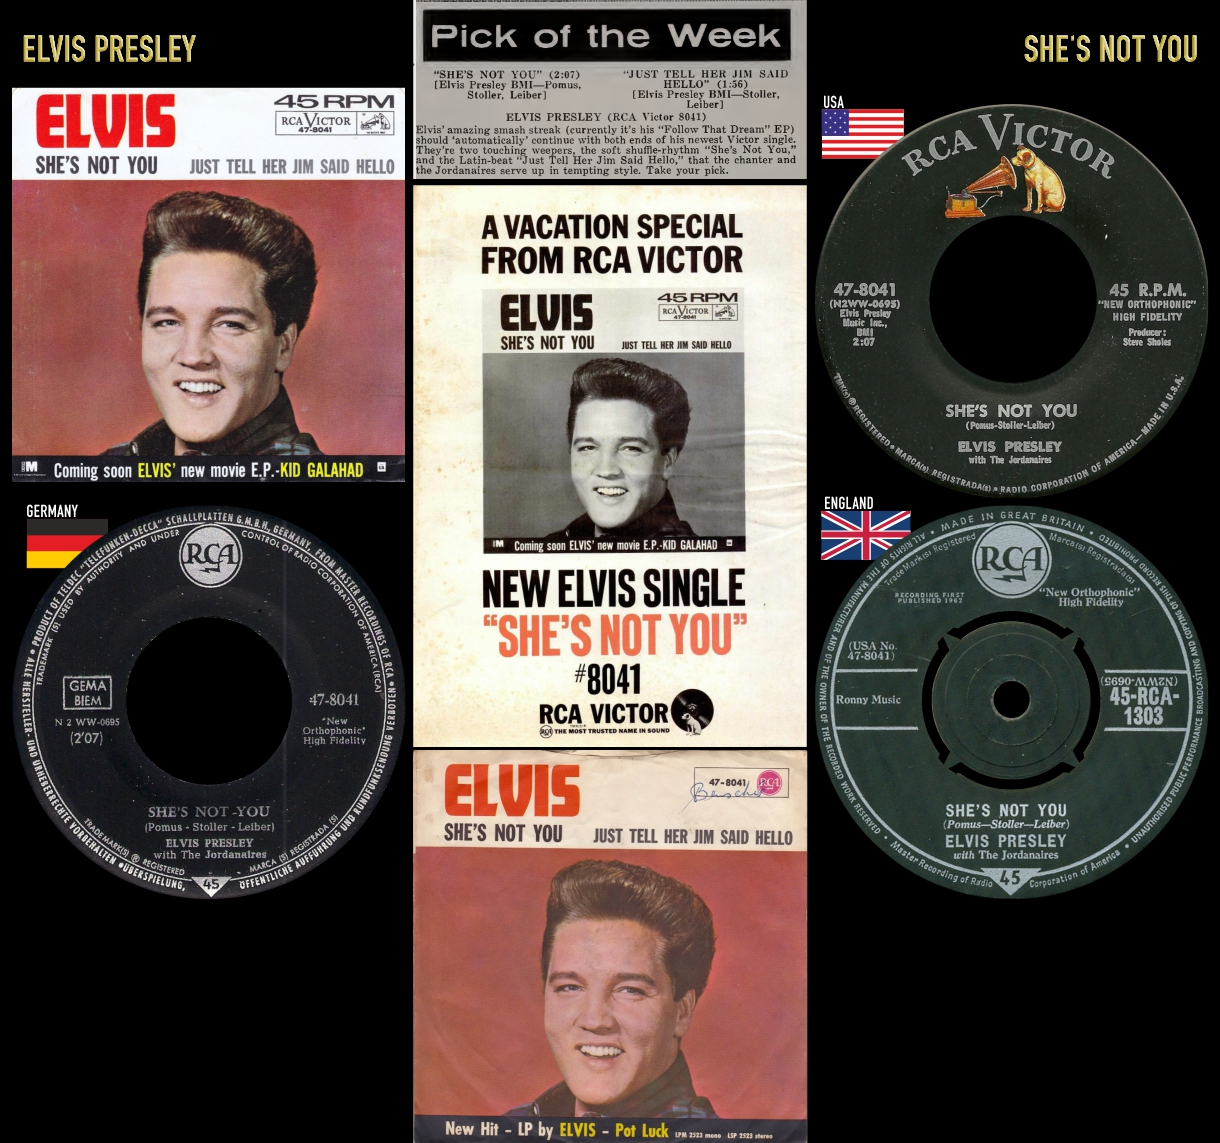 620804_Elvis Presley_She's Not You